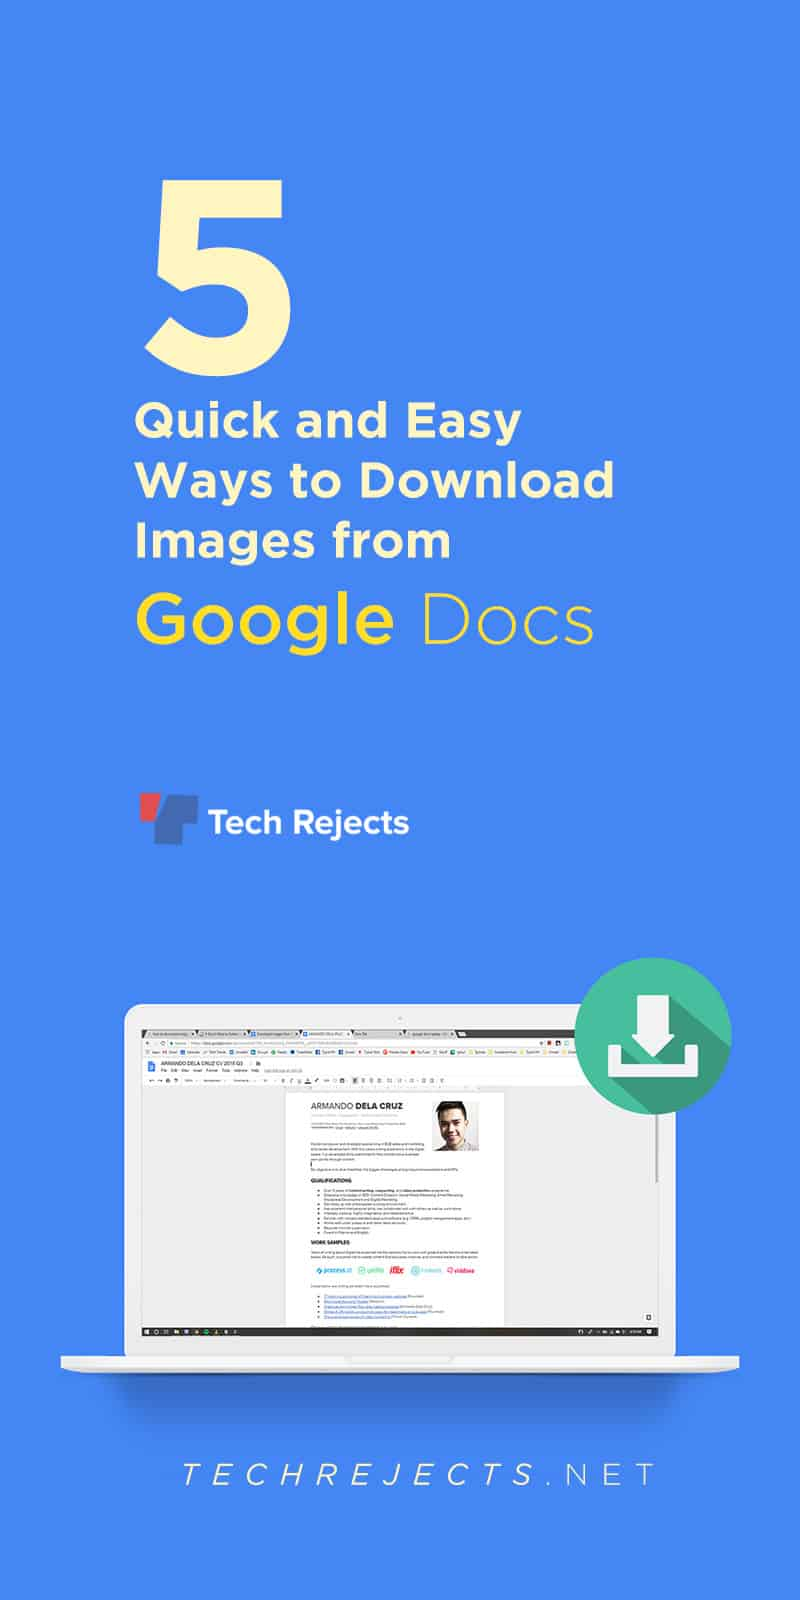 Download Images from Google Docs: 3 Quick and Easy Ways